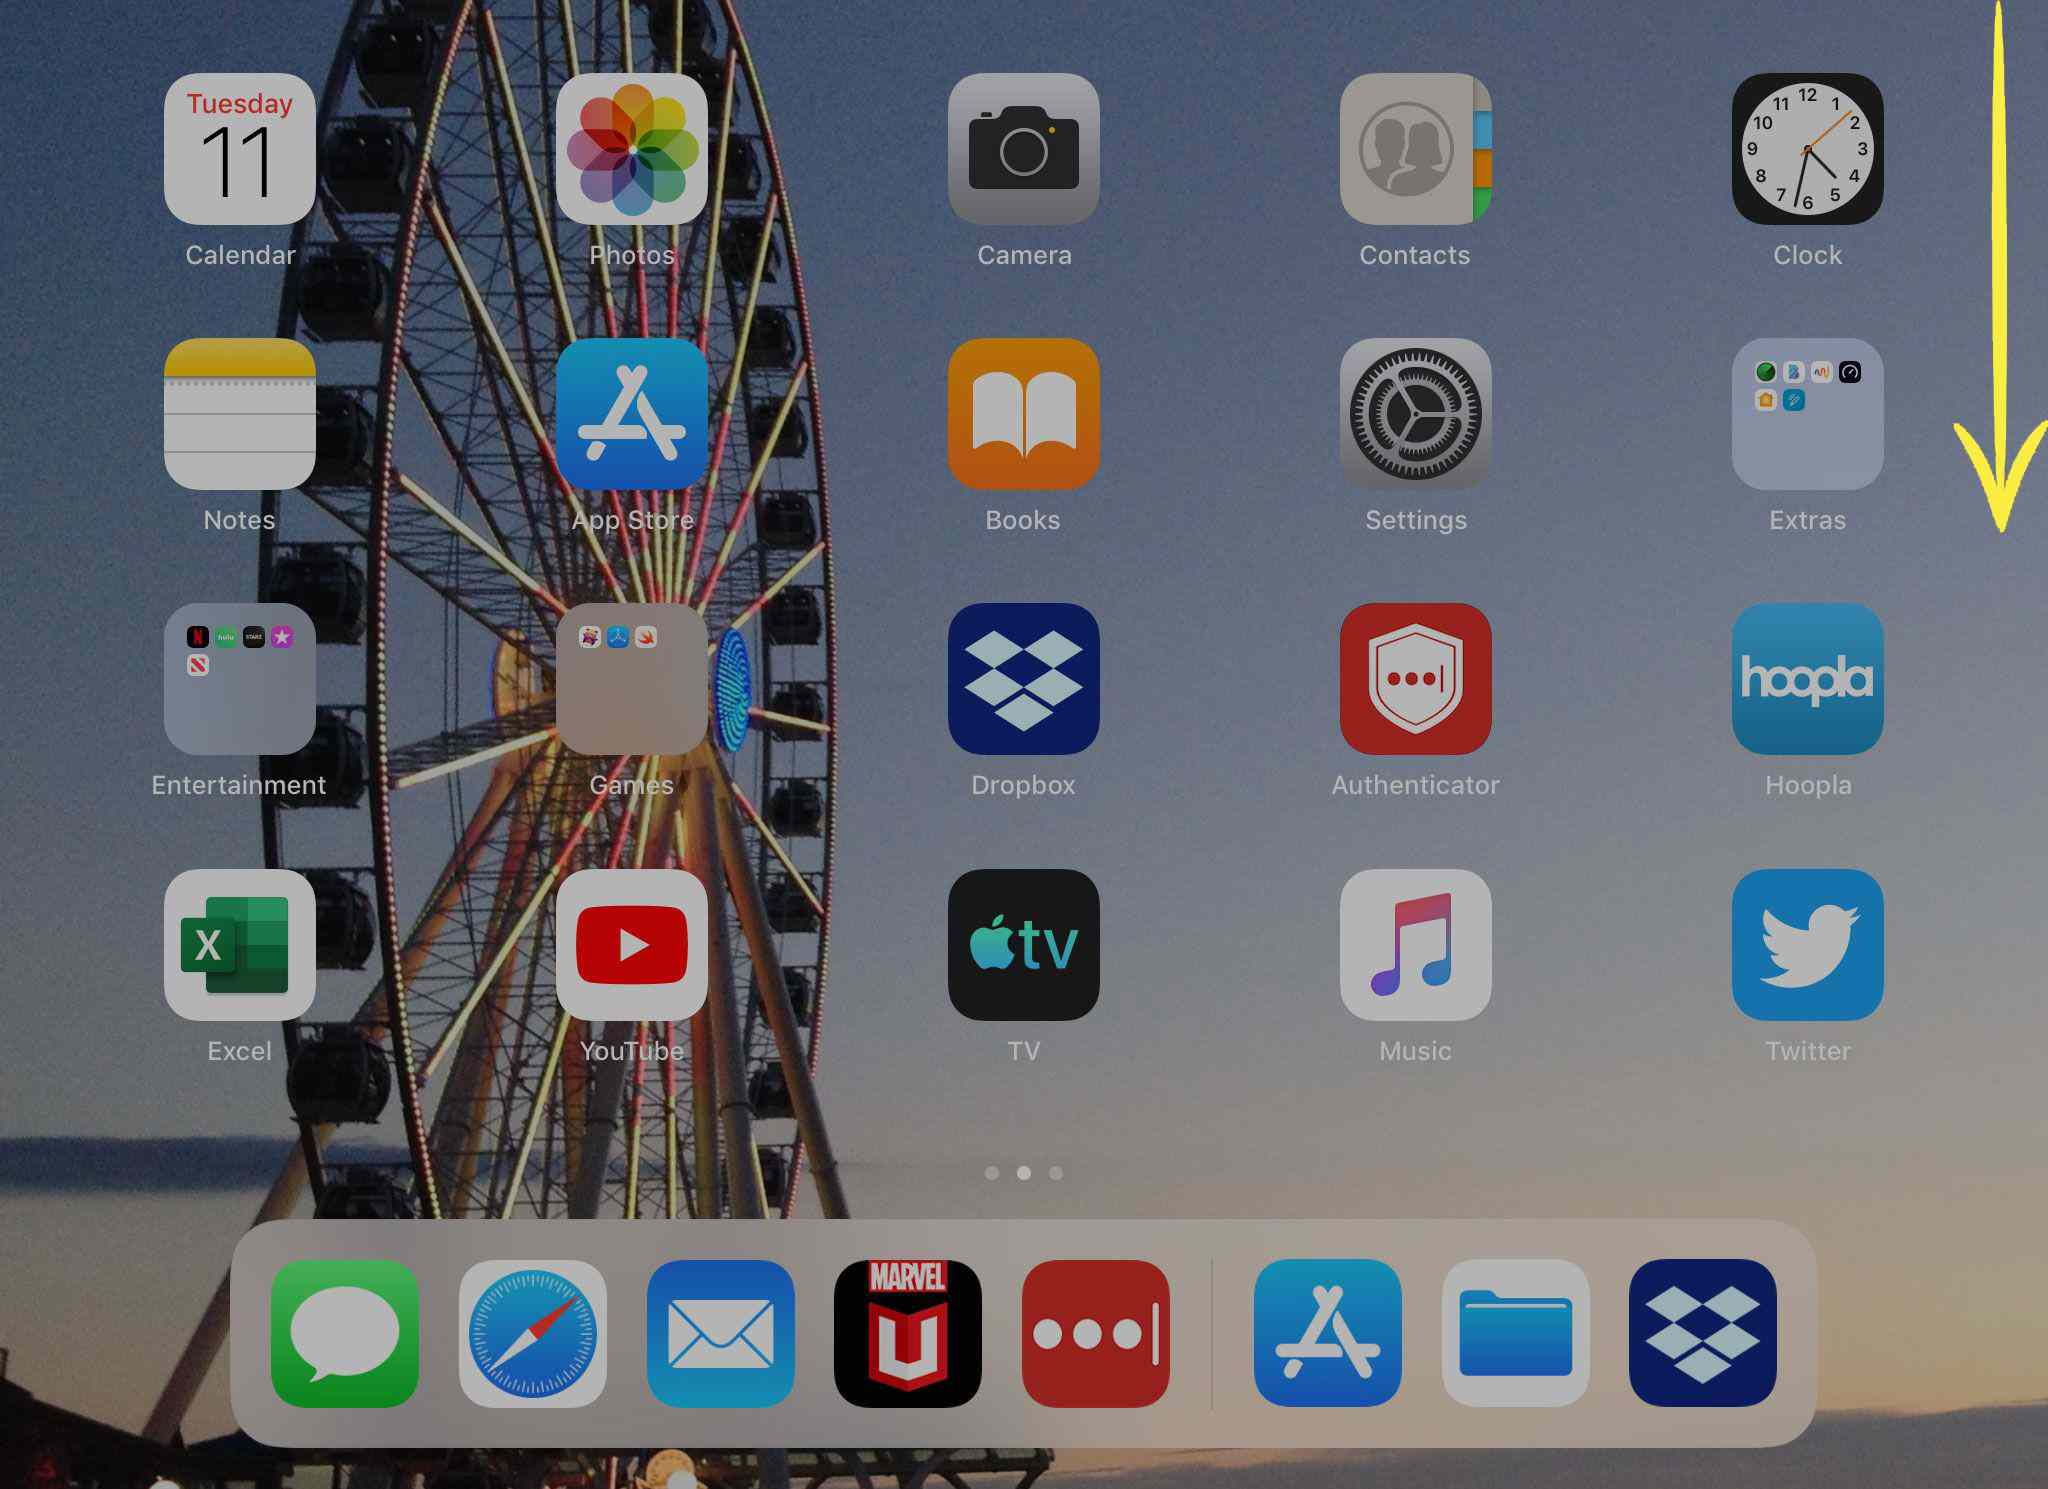 Swipe down from the upper-right corner of the screen to open Notification Center on an iPad